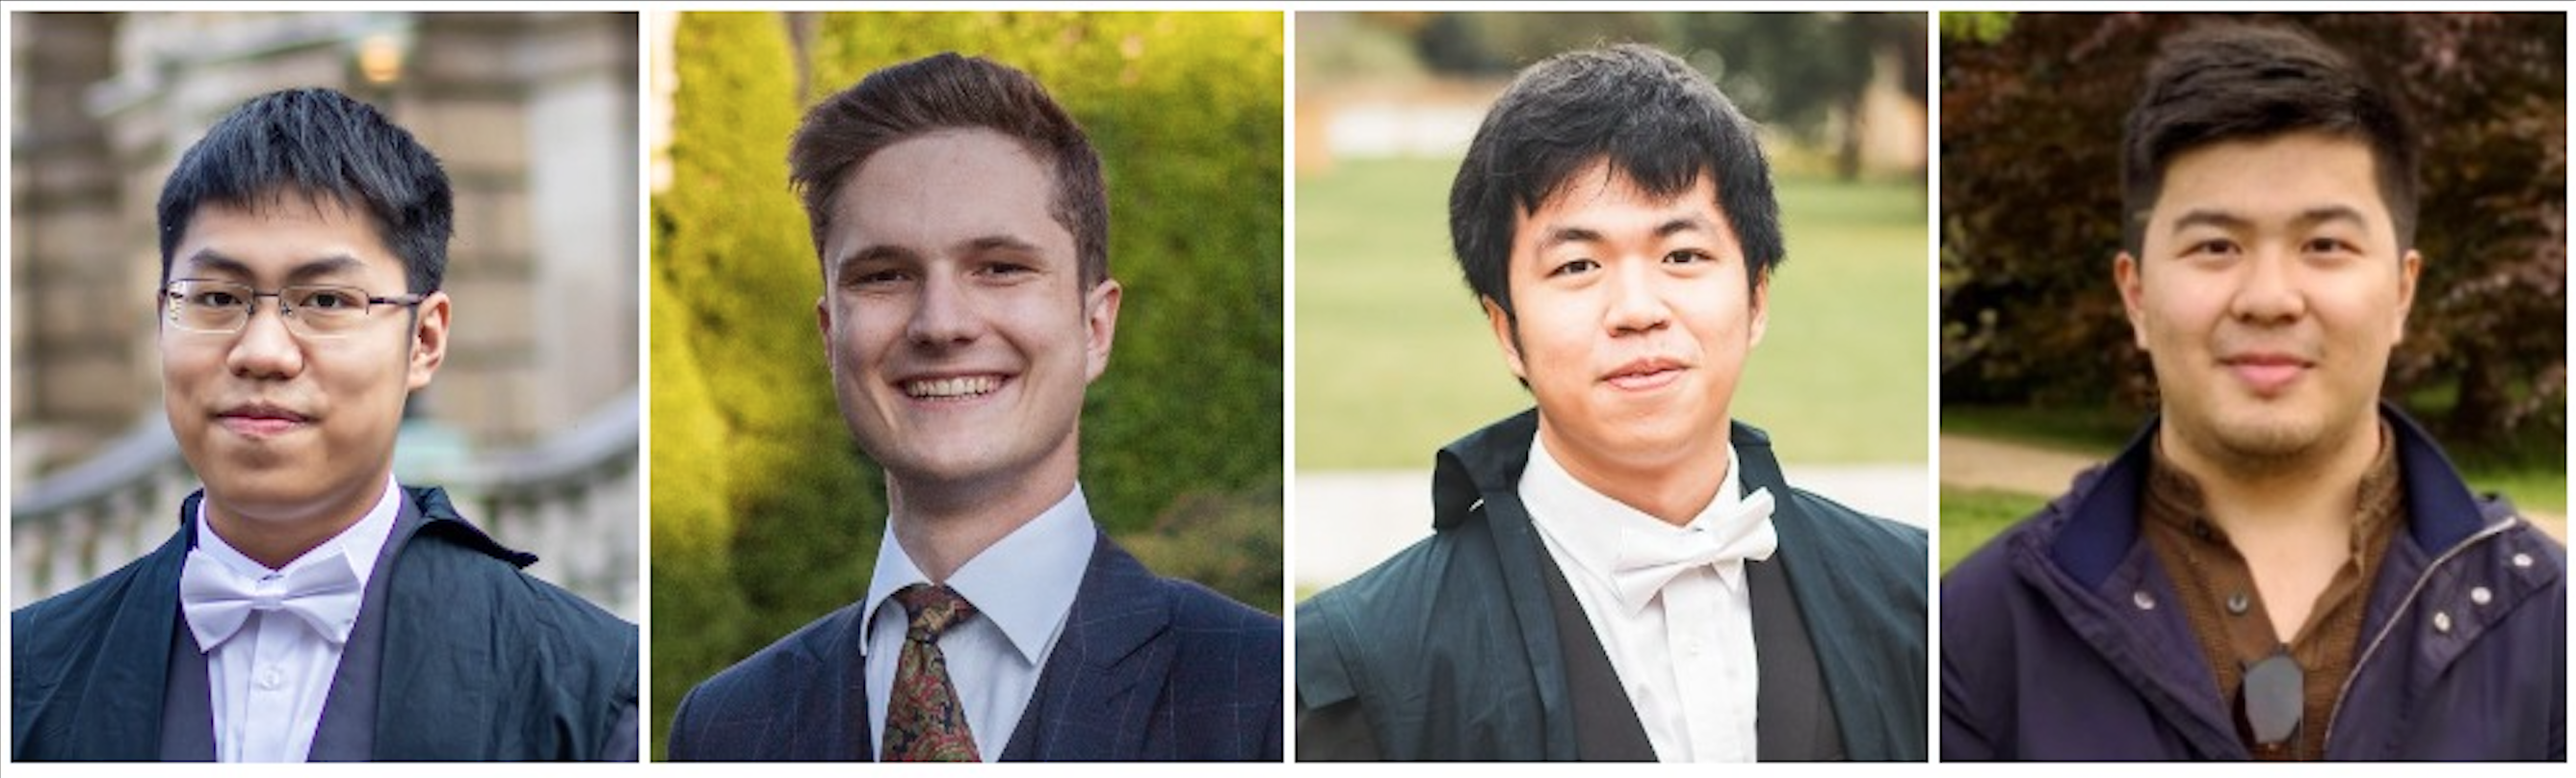 Photos of the four Oxford students who participated in the PAX Moot 2021.